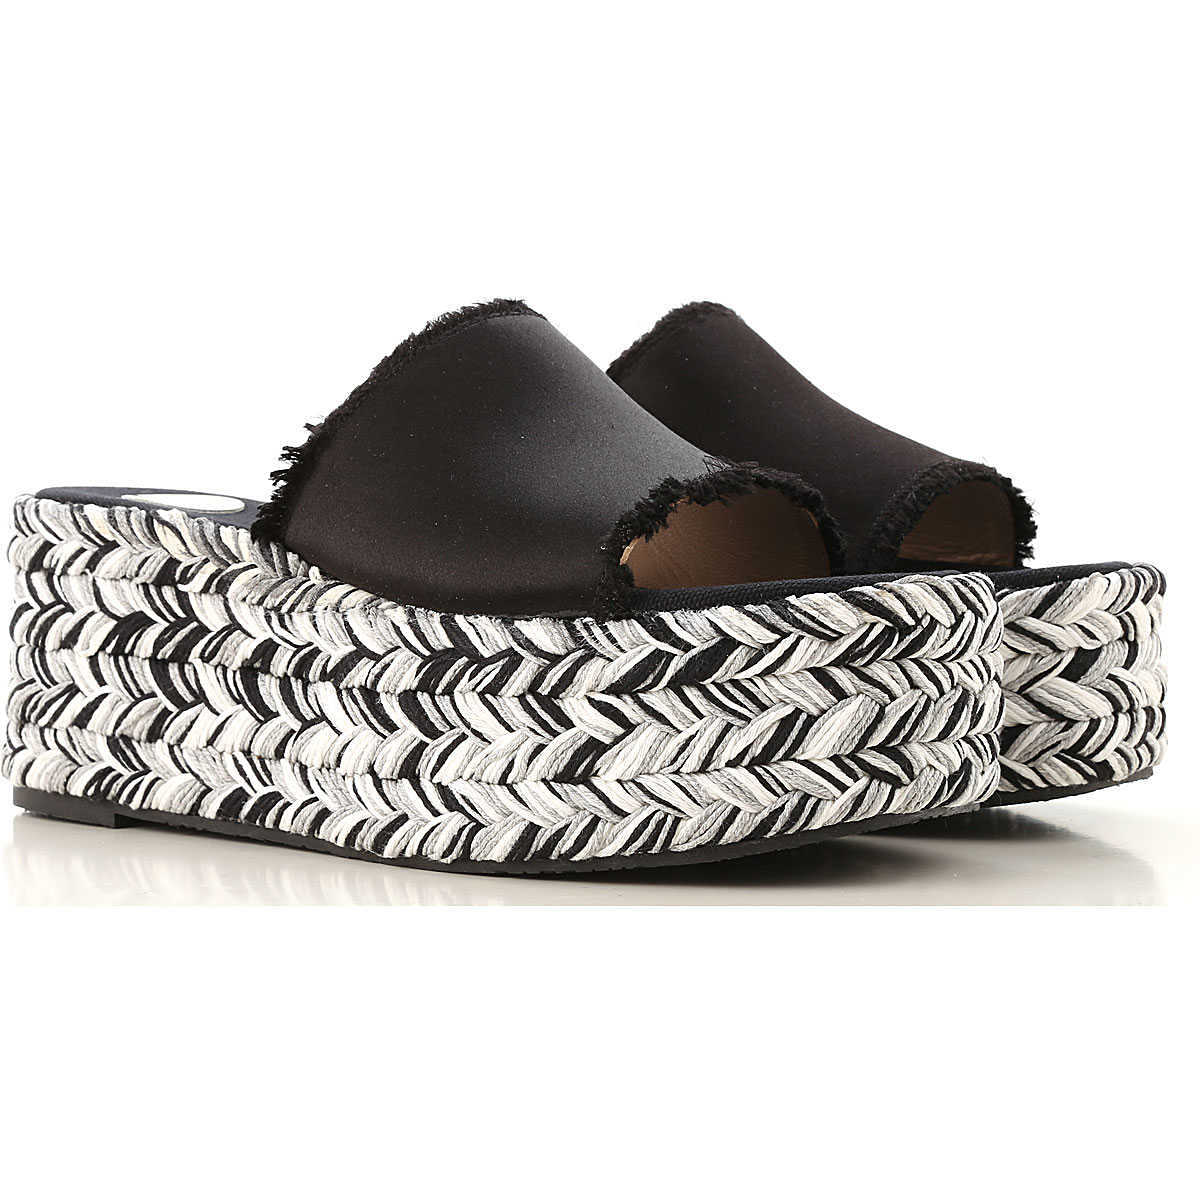 Ras Wedges for Women On Sale Black - GOOFASH